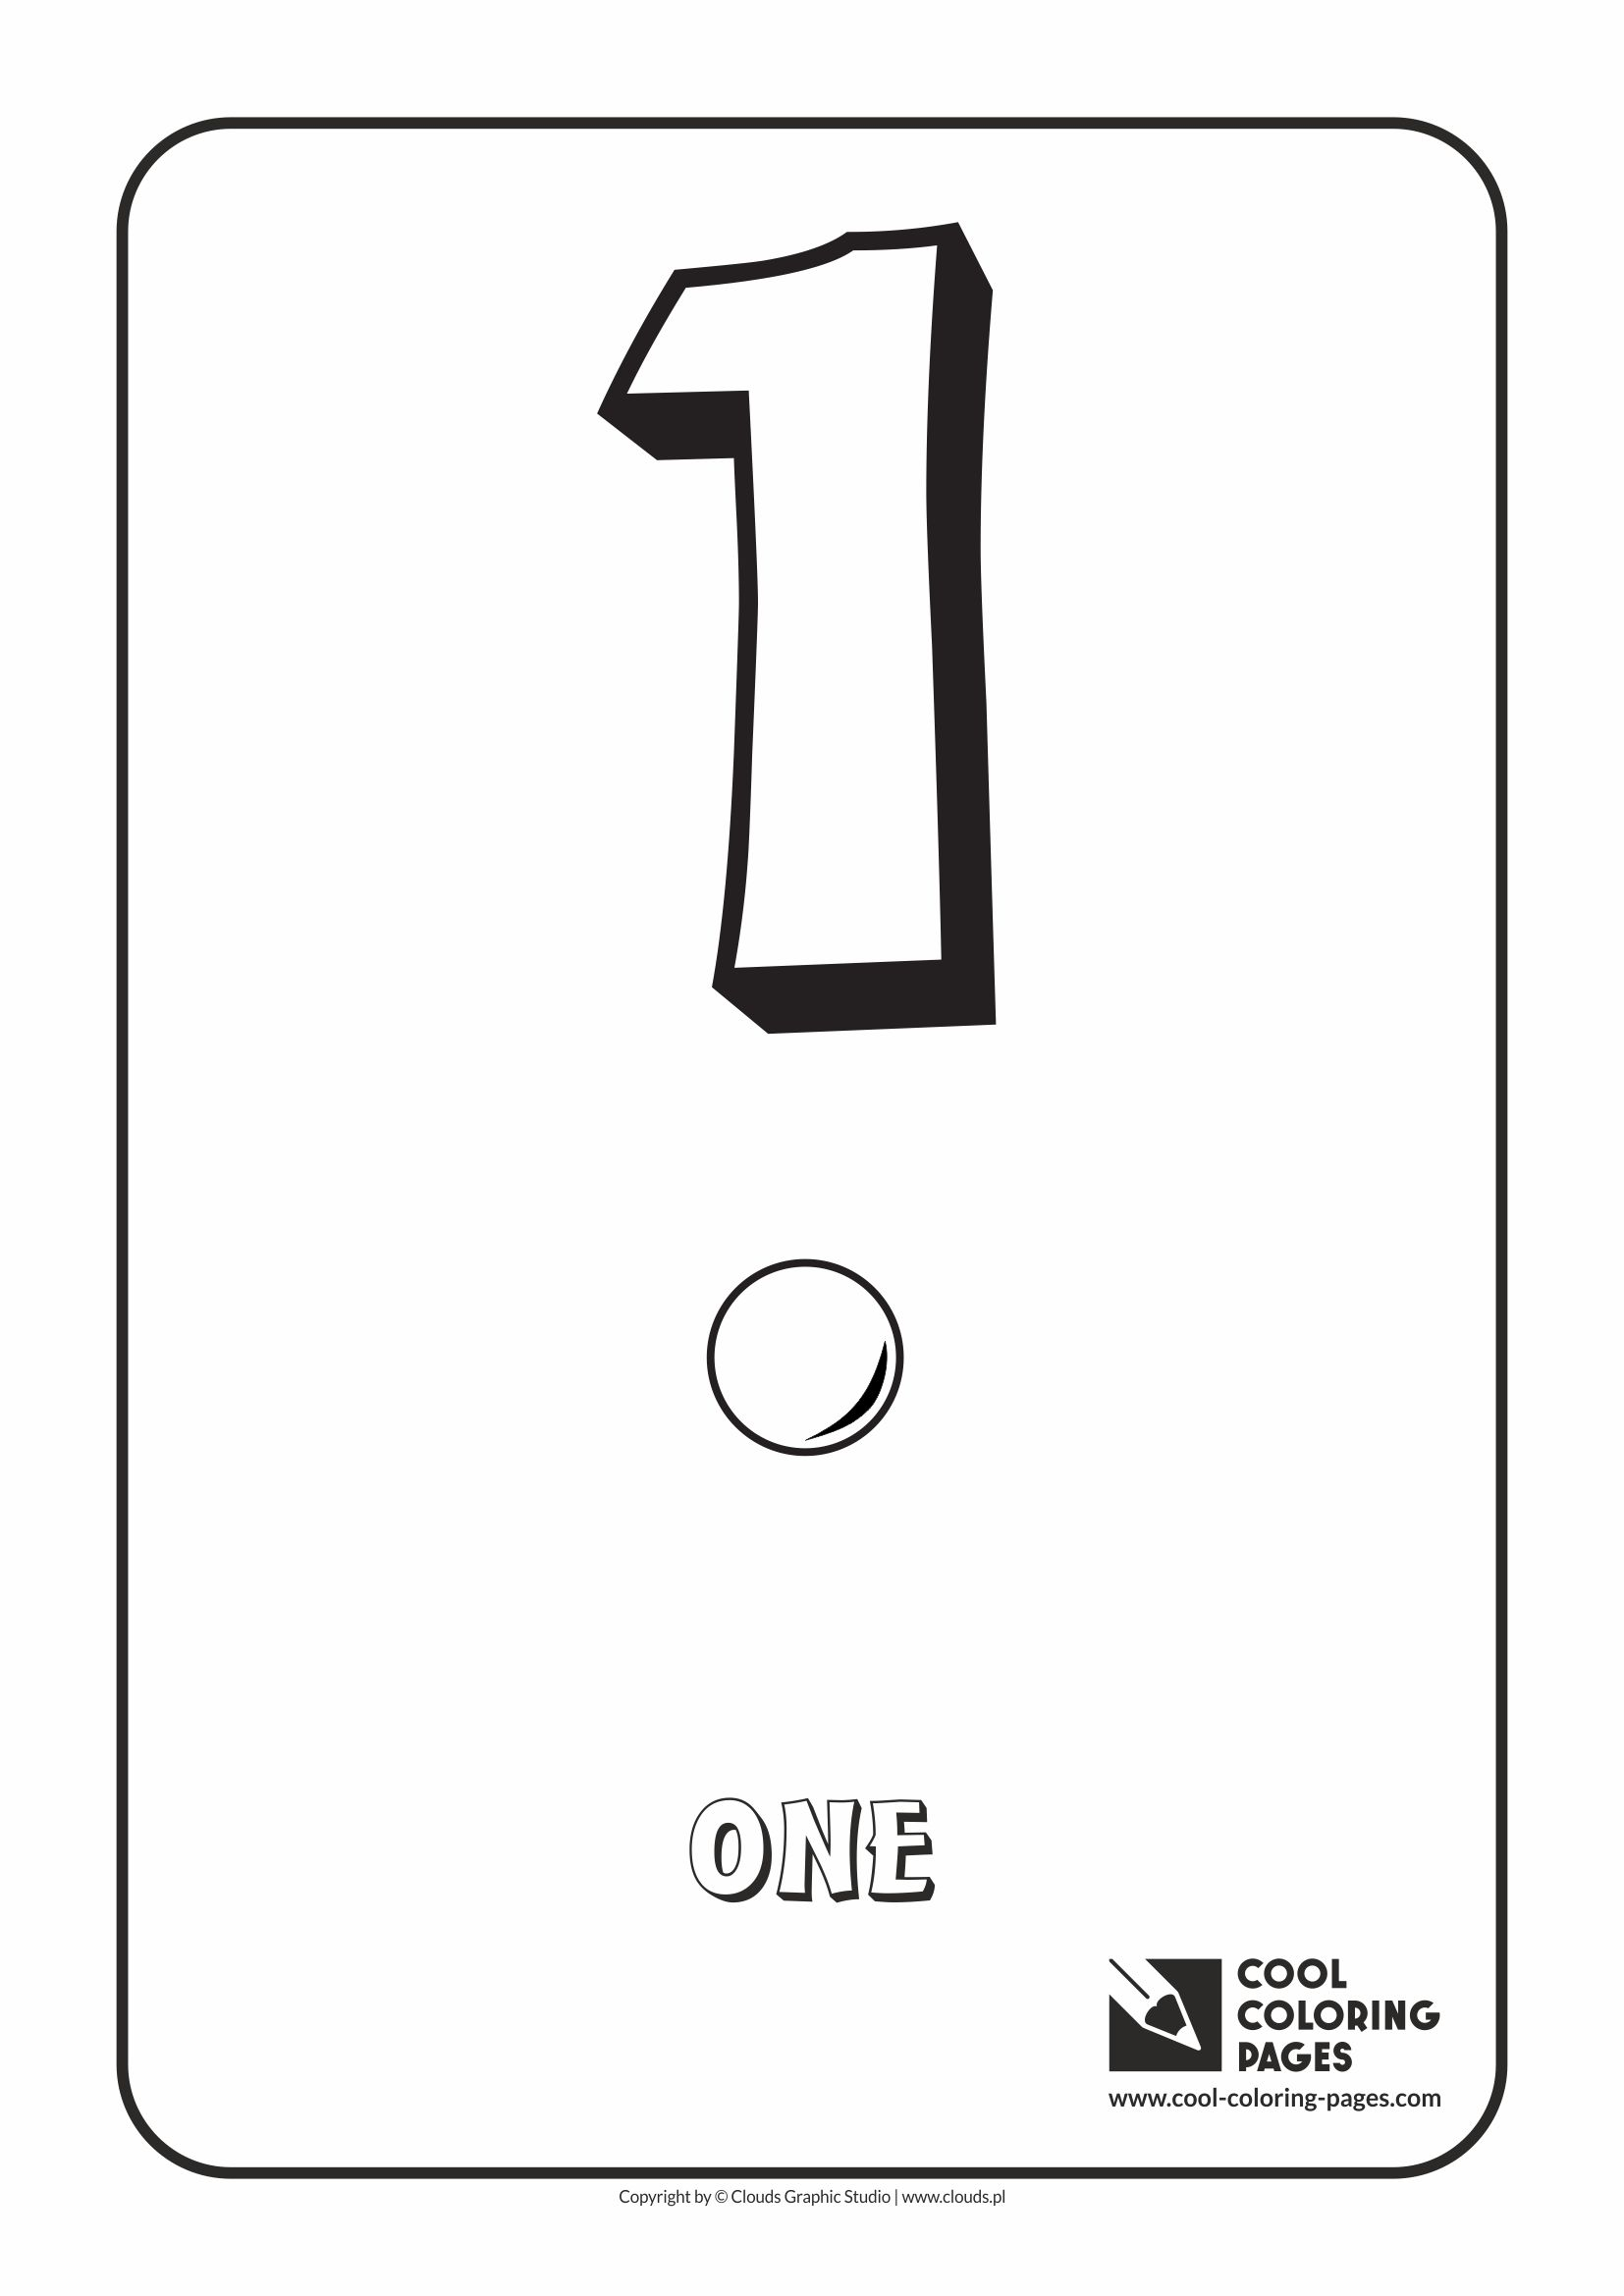 Cool Coloring Pages - Digits / Digit 1 / Coloring page with digit 1